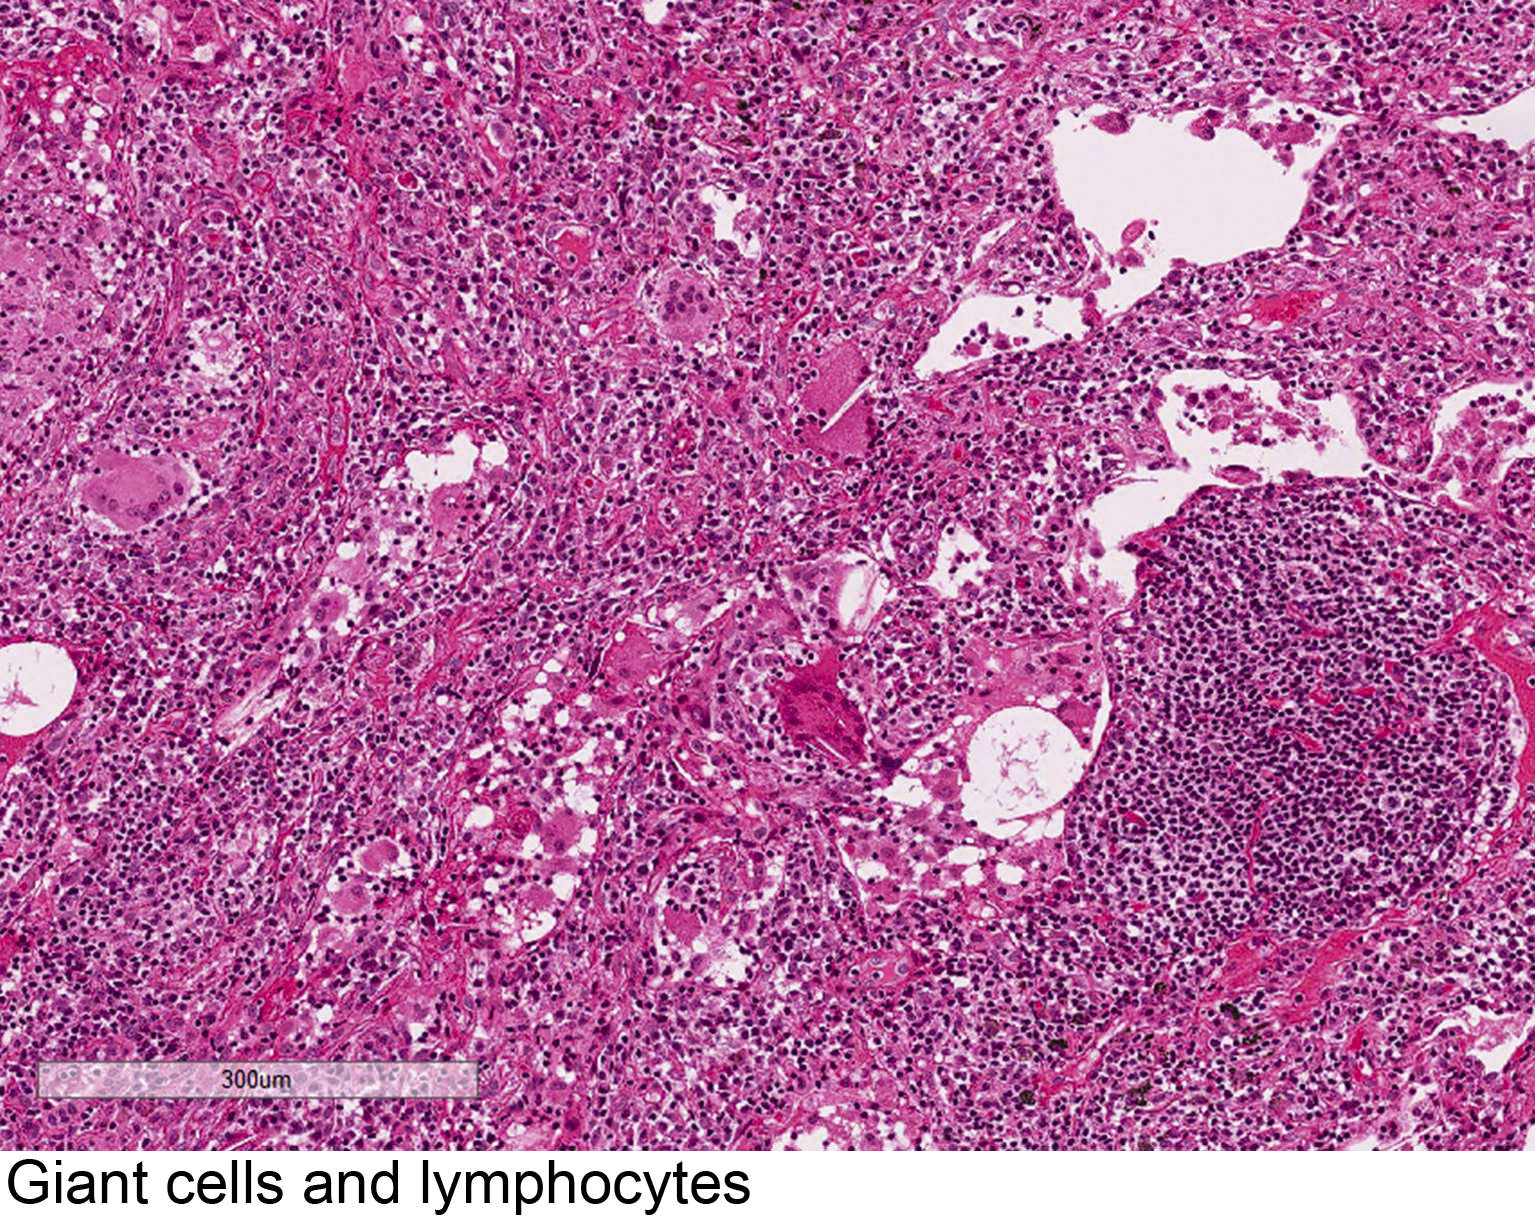 Giant cells and lymphocytes